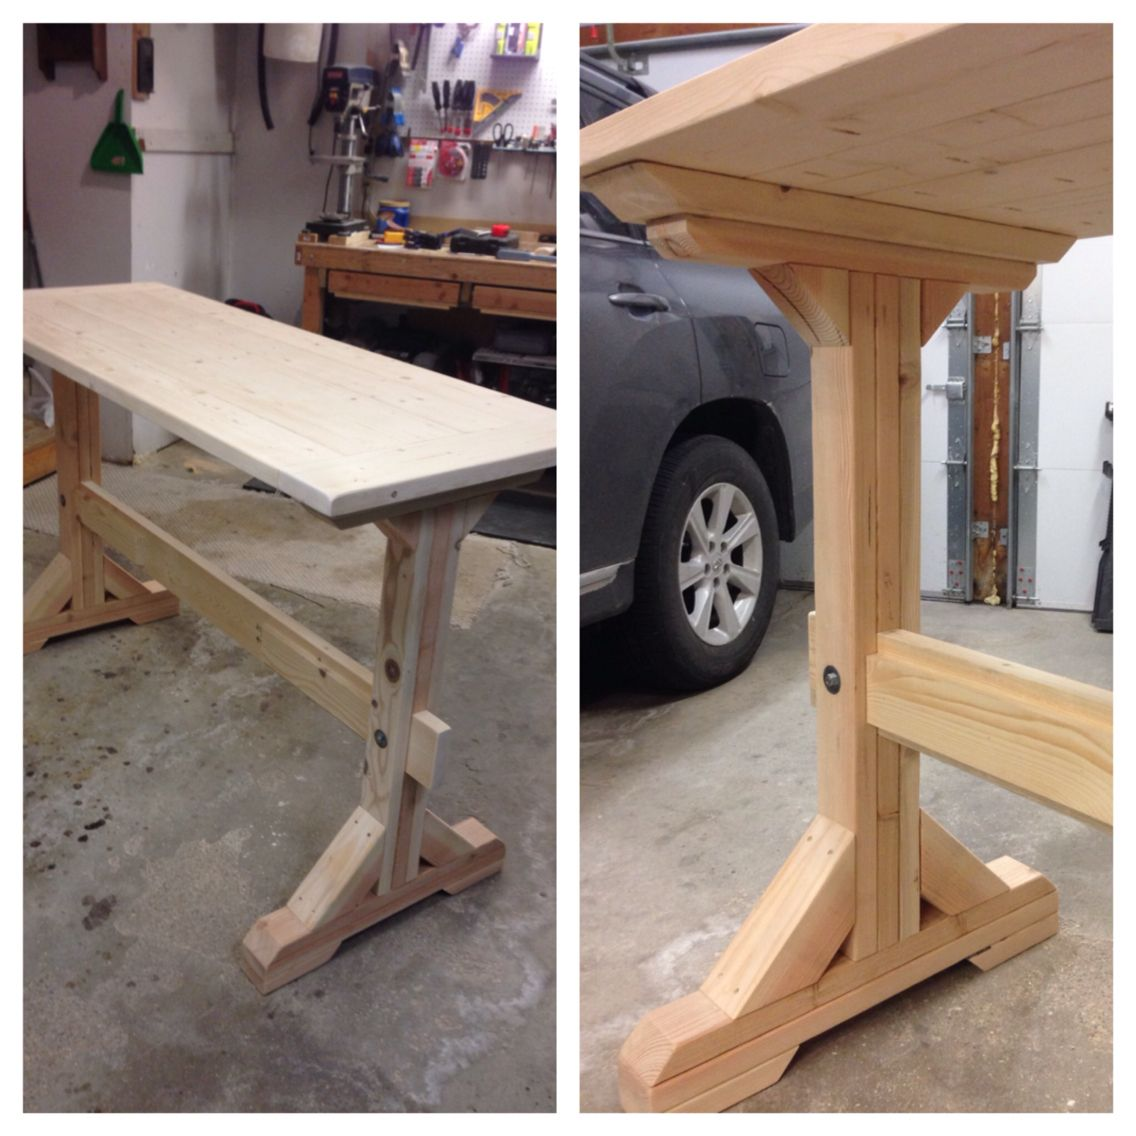 Pub Table I Made From 2x6 2x4 And 4x4 Dimensional Lumber